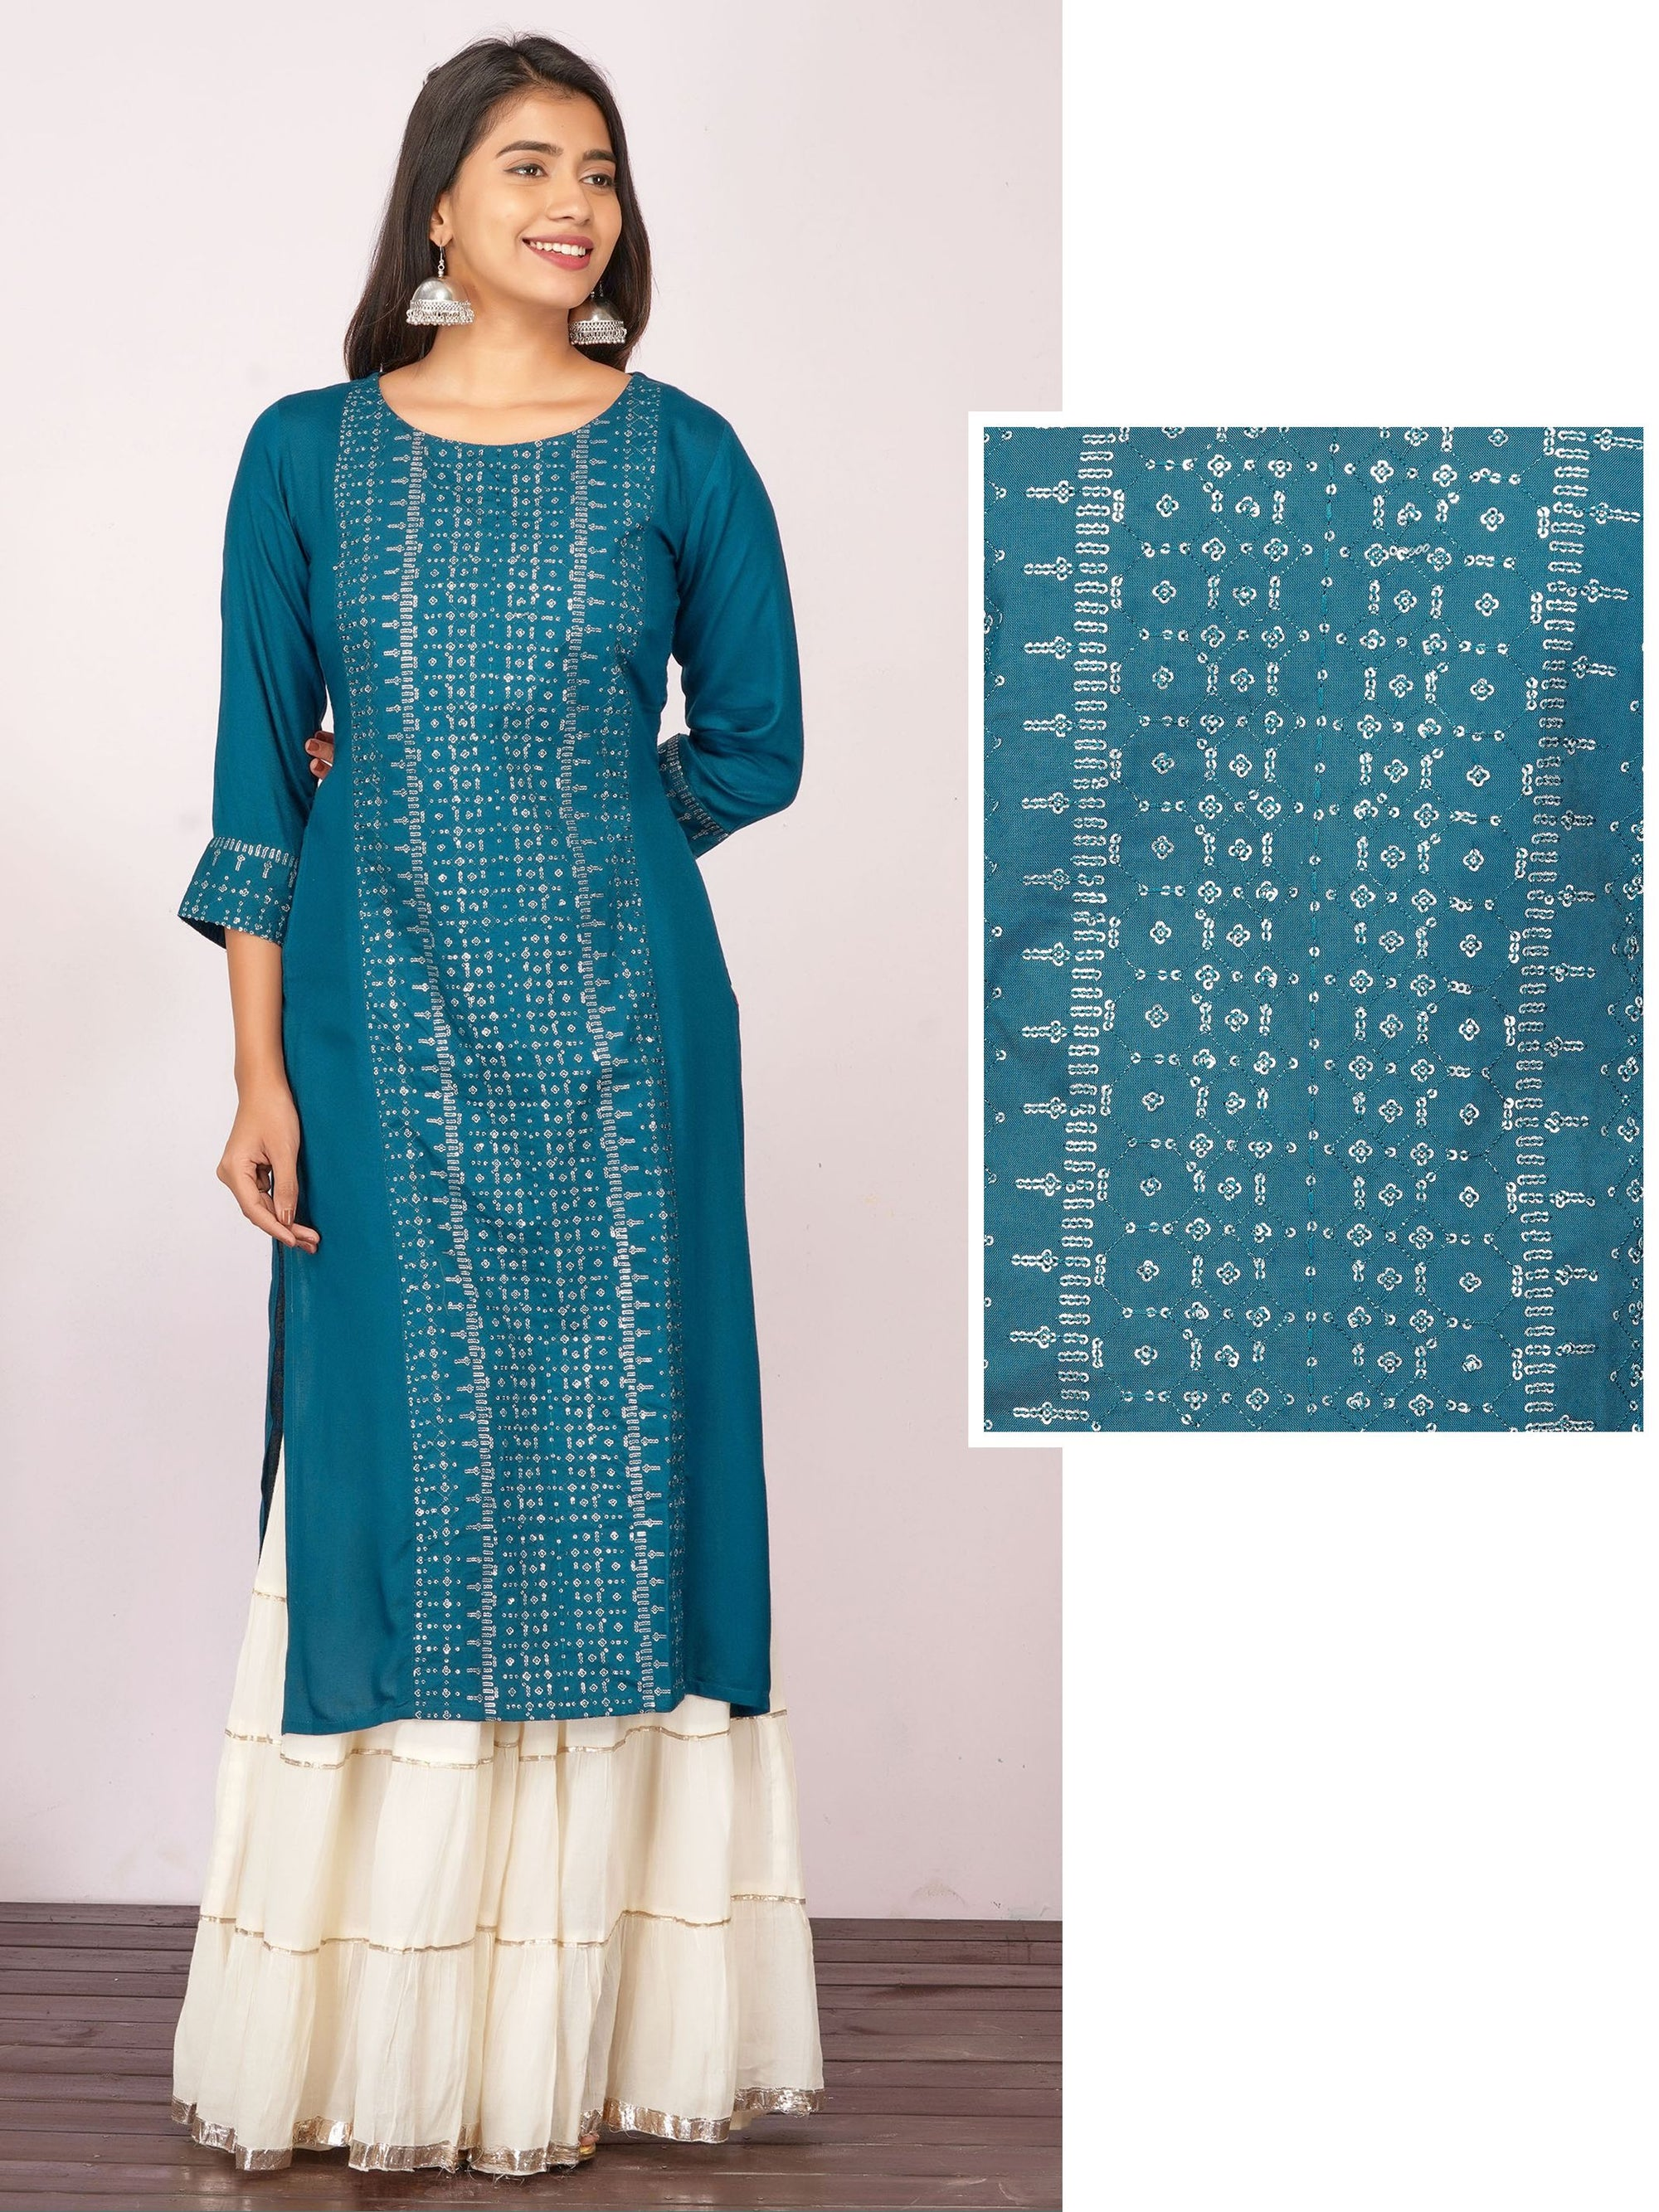 Silver Sequins Embroidered Rayon Kurti– Teal Blue